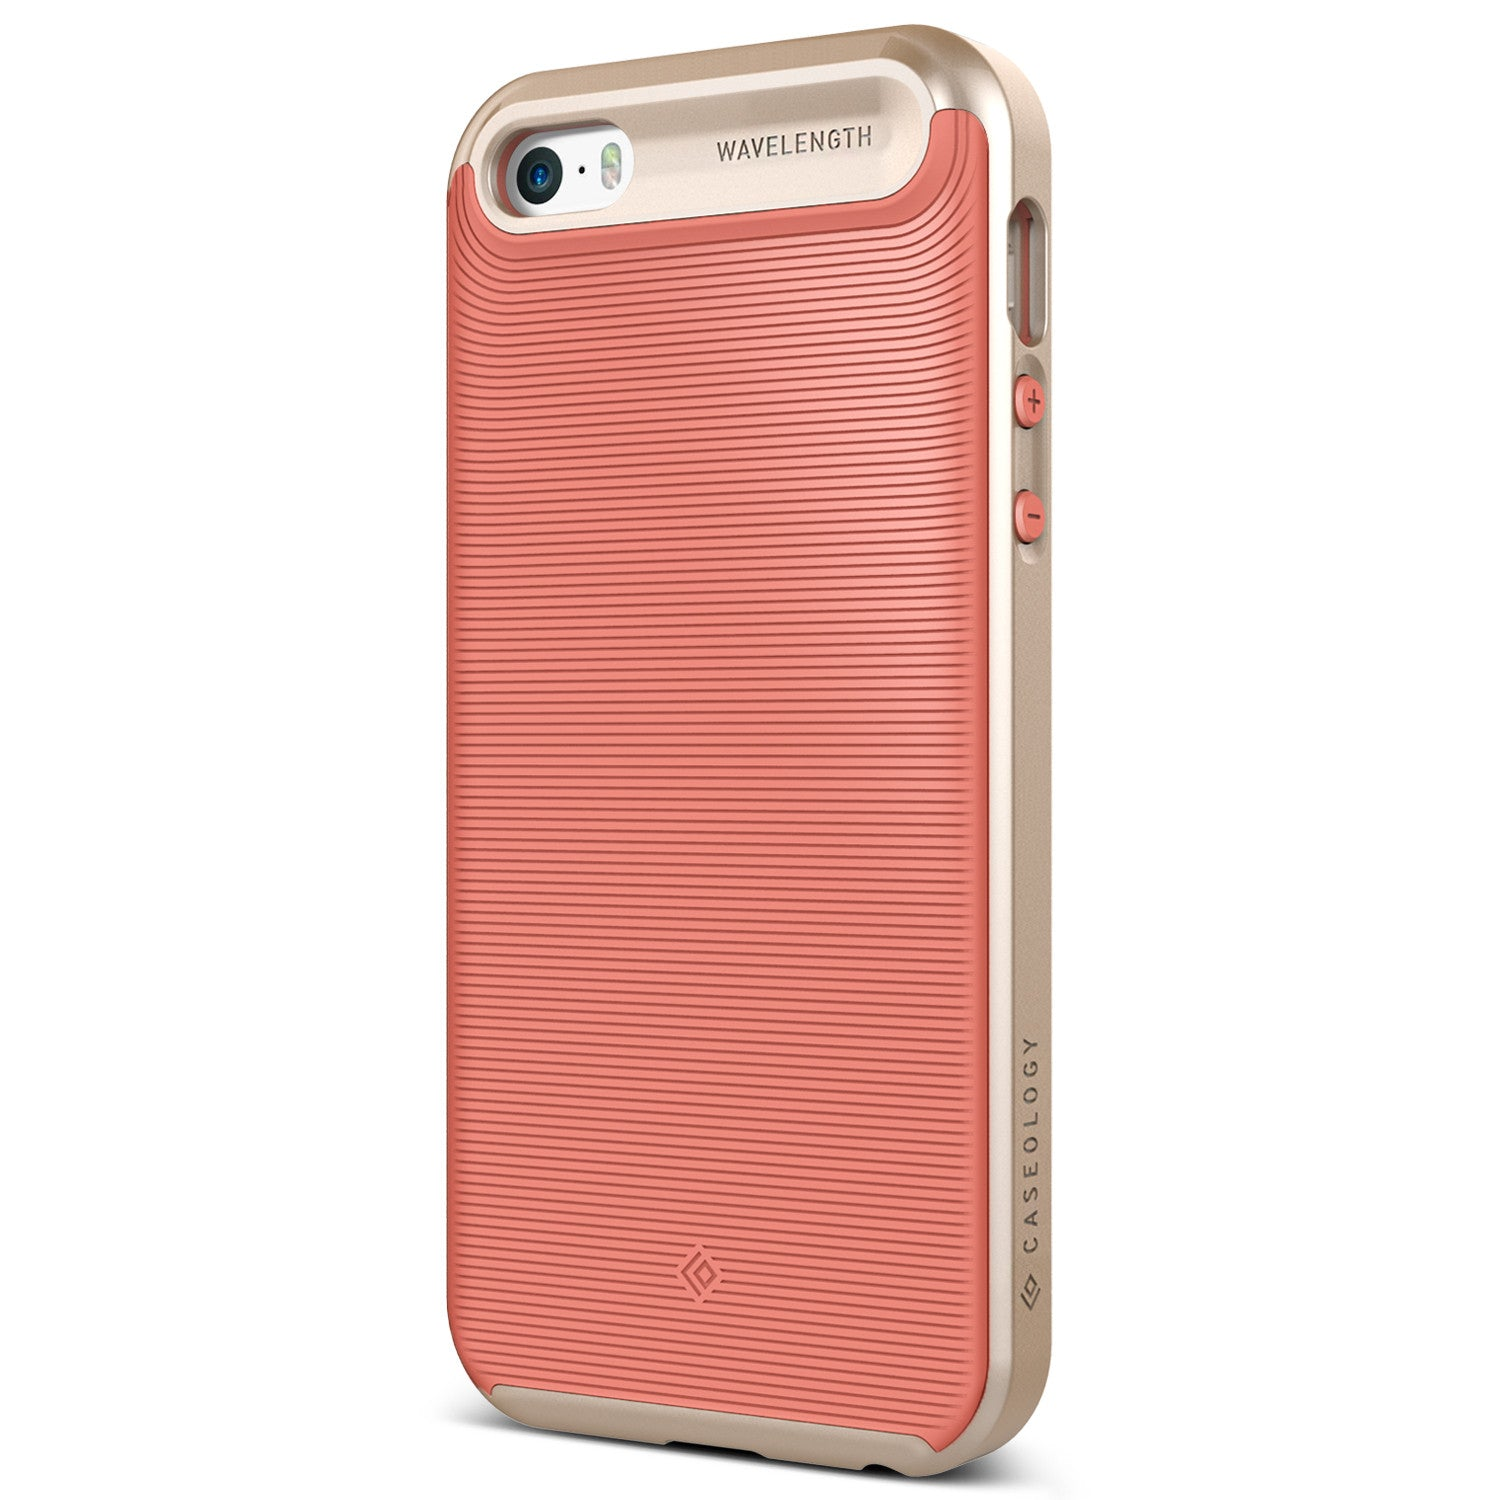 Caseology iPhone 5S 5 SE Case Wavelength Series in Coral Pink